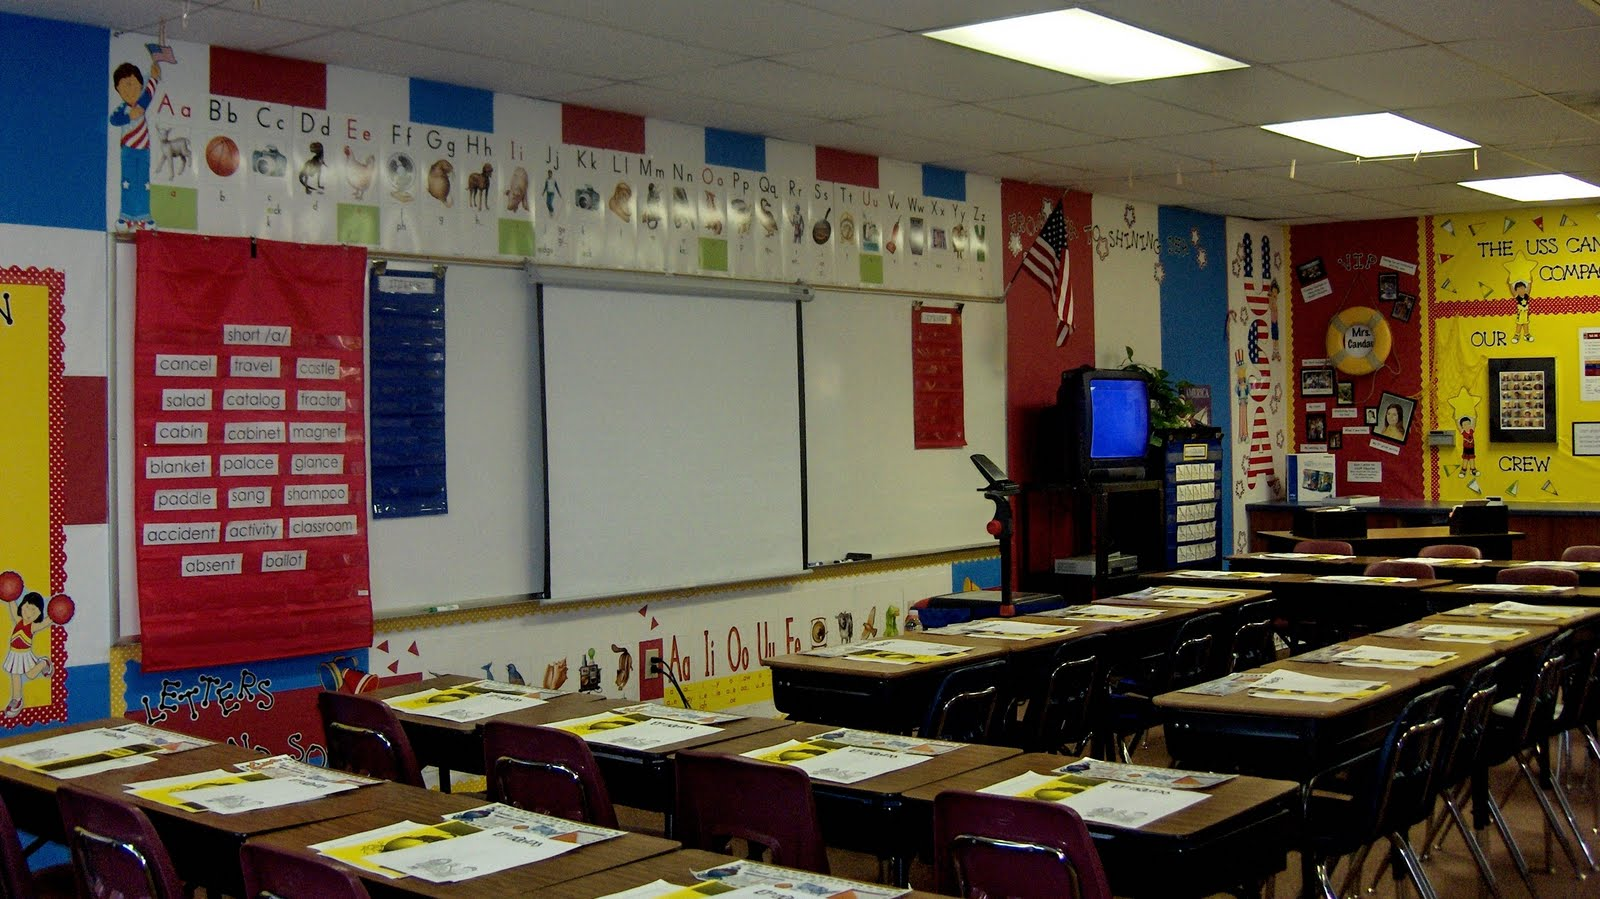 Classroom Decor 5th Grade ~ Classroom set up ideas and wall displays for elementary